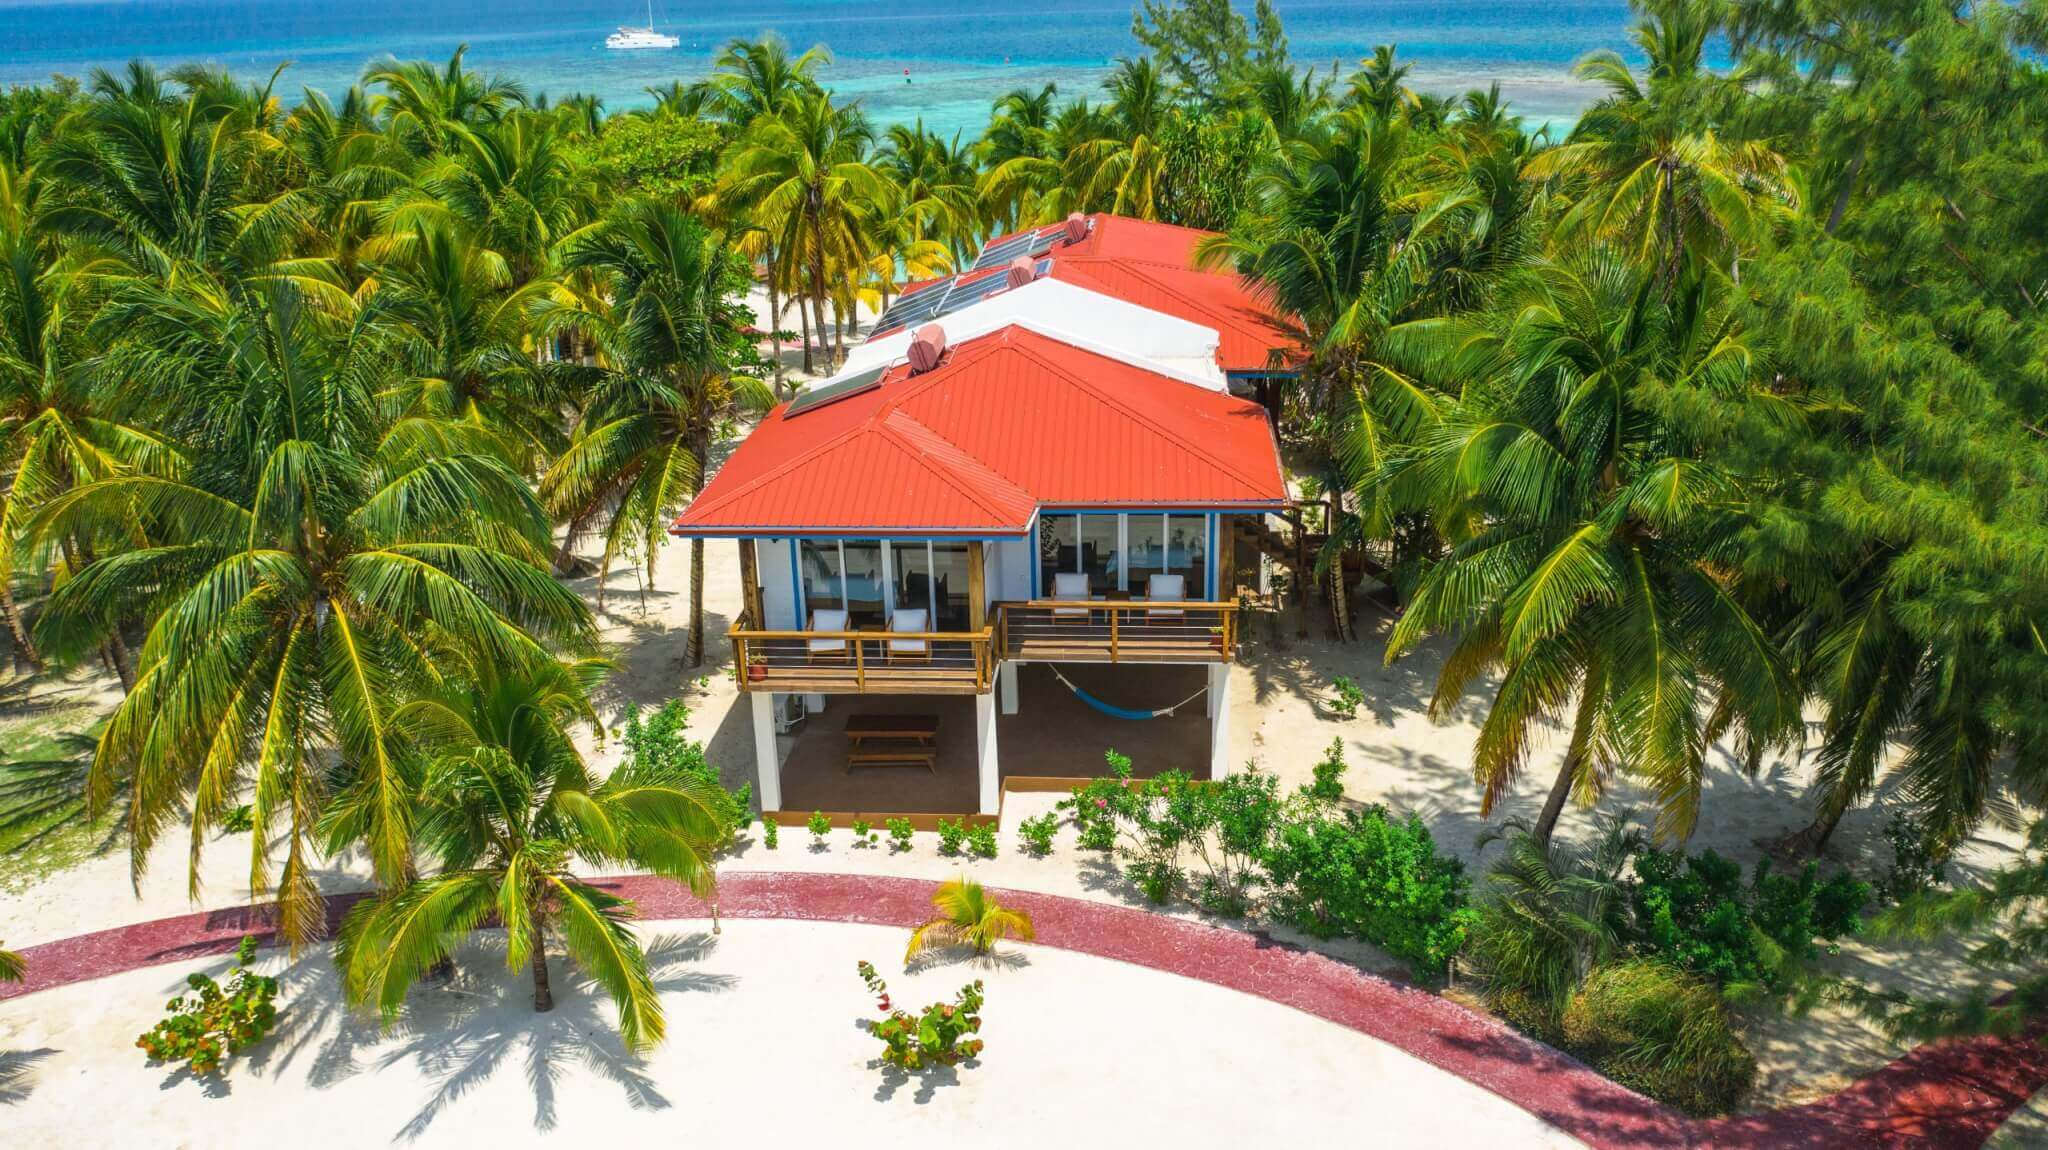 Your Group Can Afford to Rent this Belize Private Island if You Act Fast!